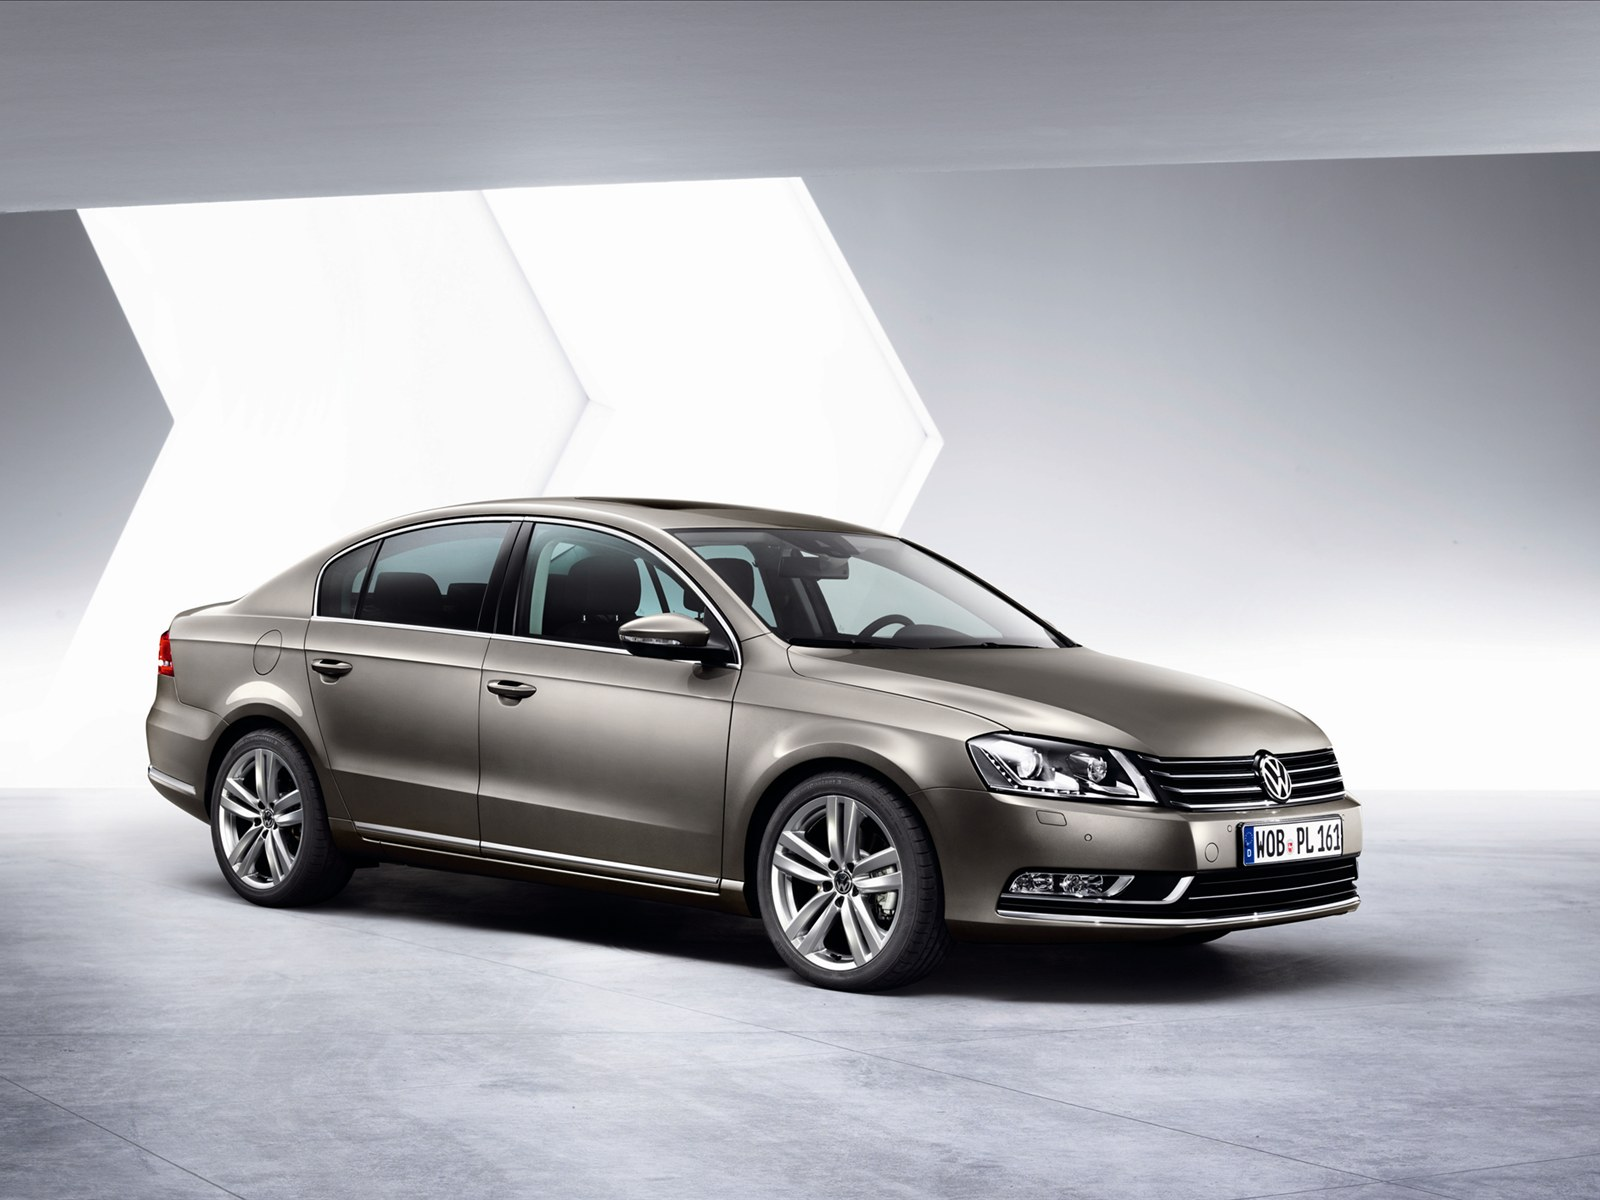 Volkswagen passat 2011 photo - 1